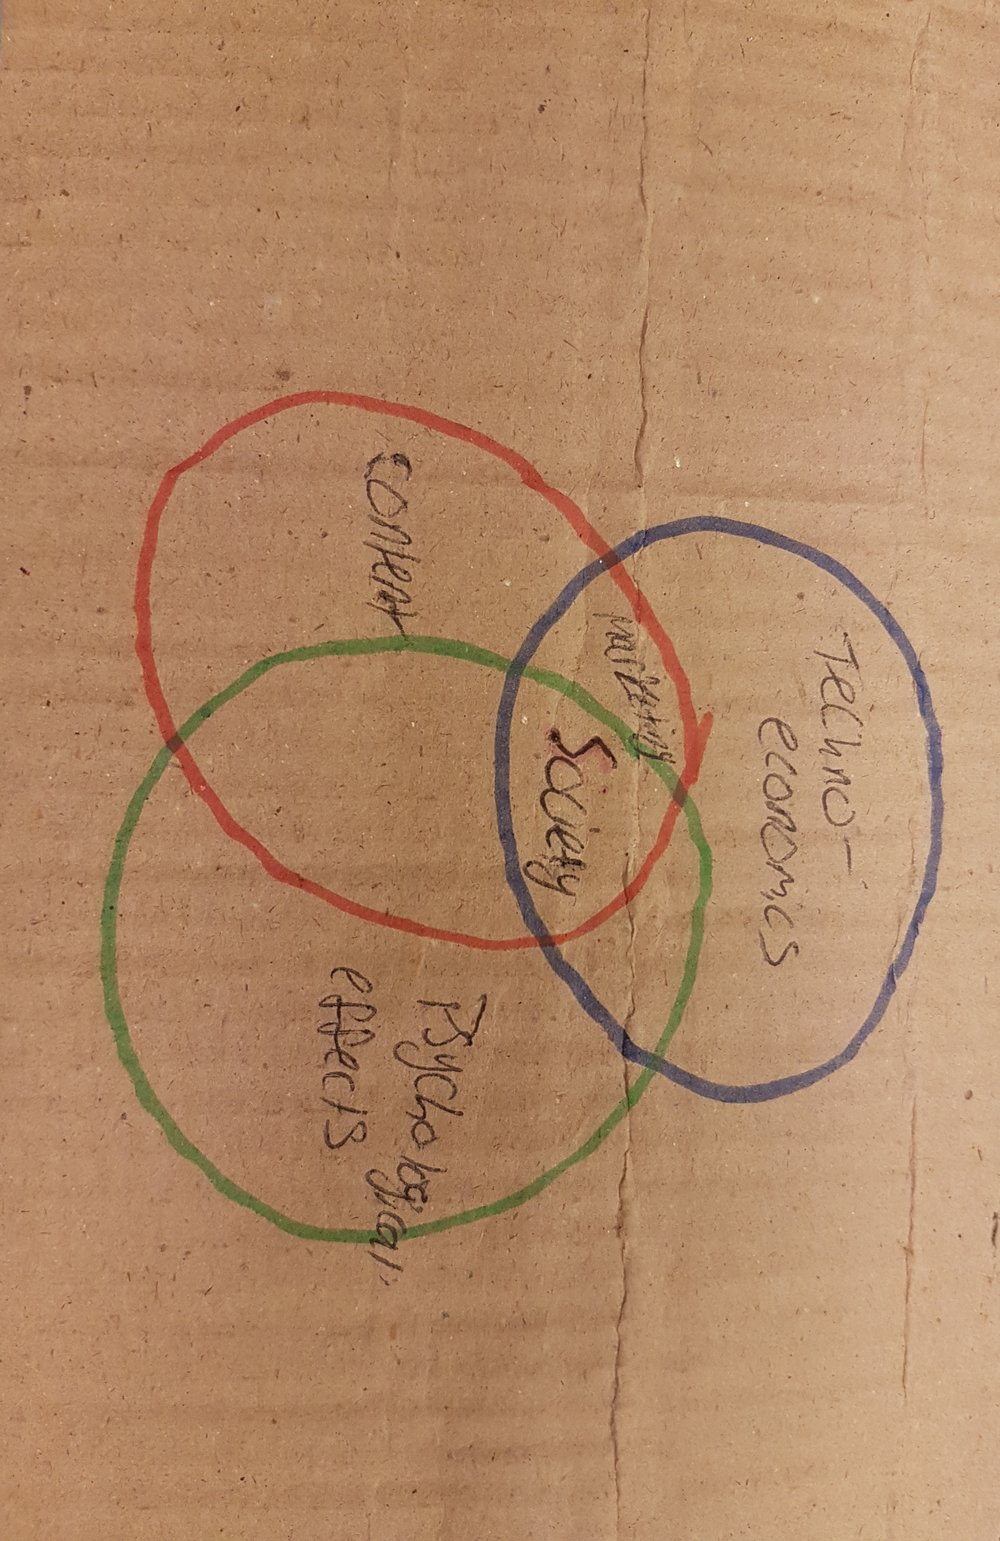 Venn Diagram: 3 sets, unions, intersections and complements